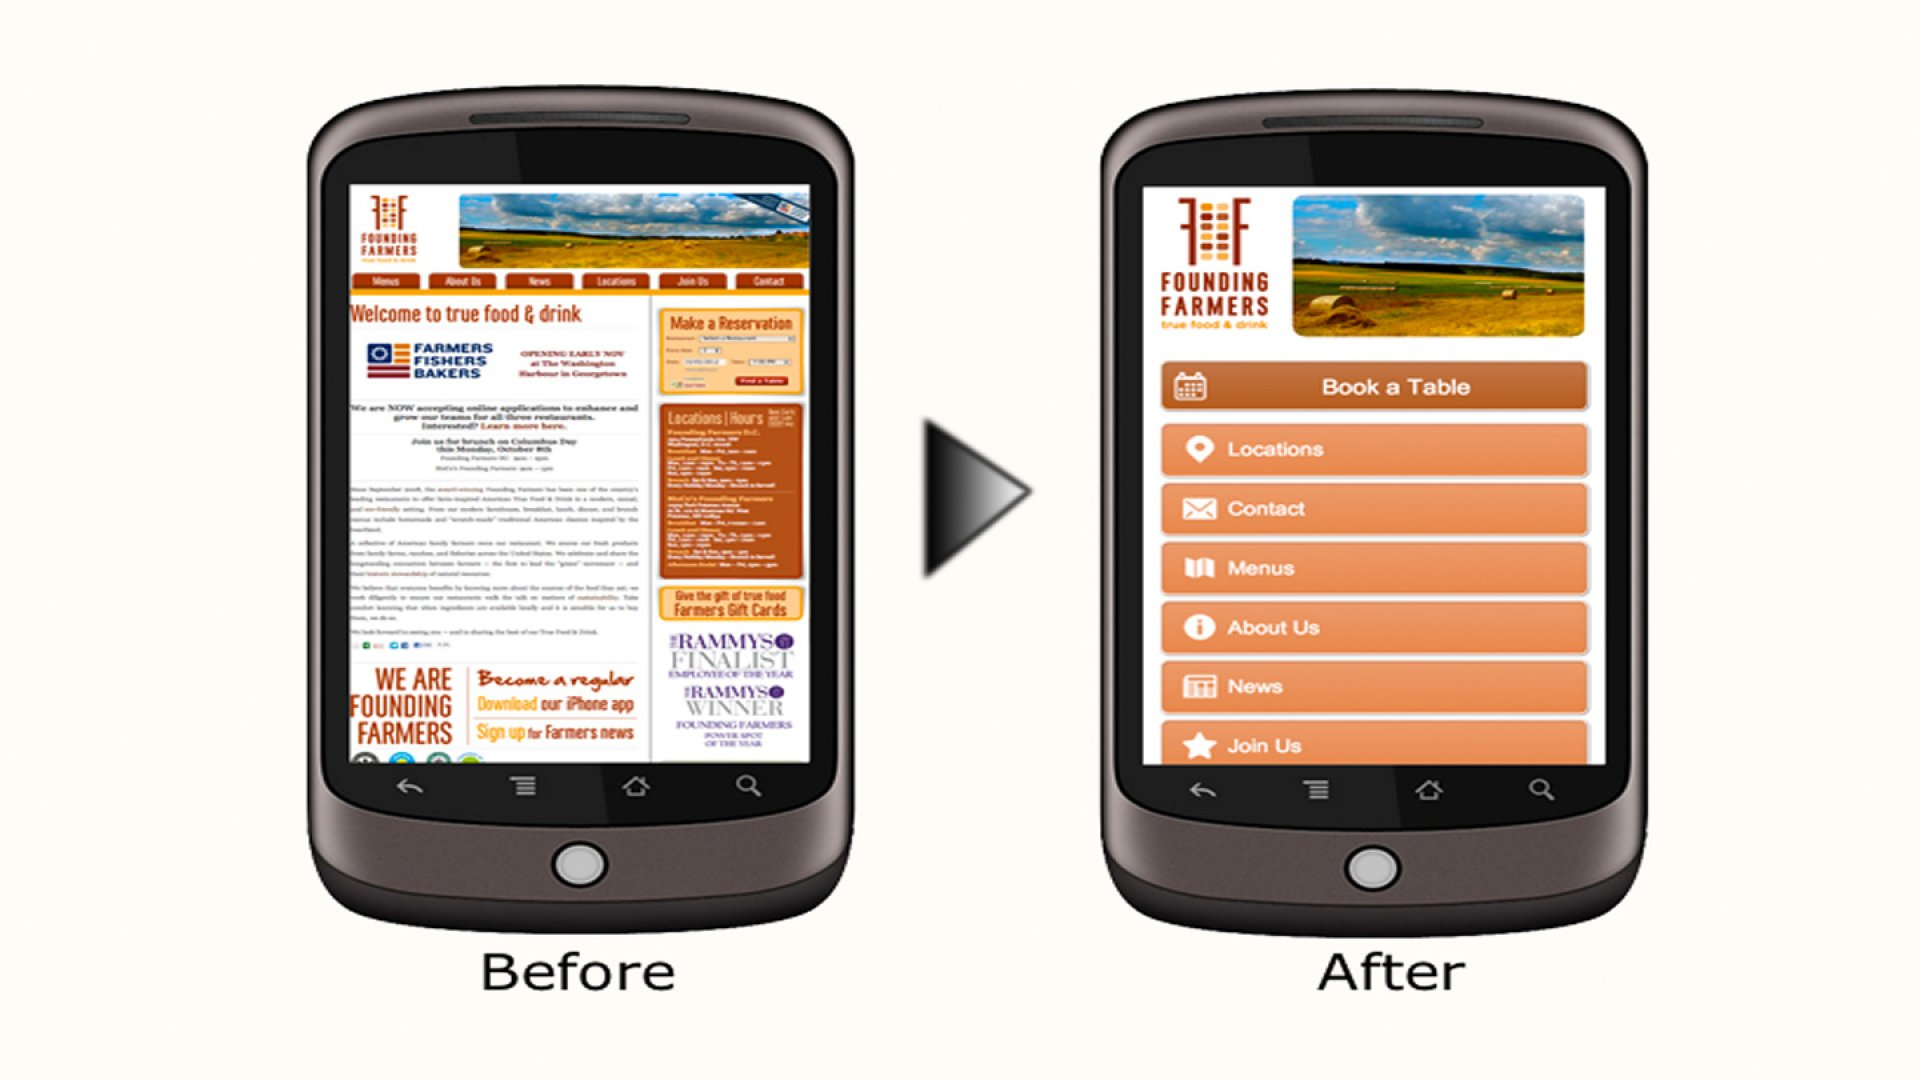 Restaurateurs: Need a Mobile Site? OpenTable Wants to Help